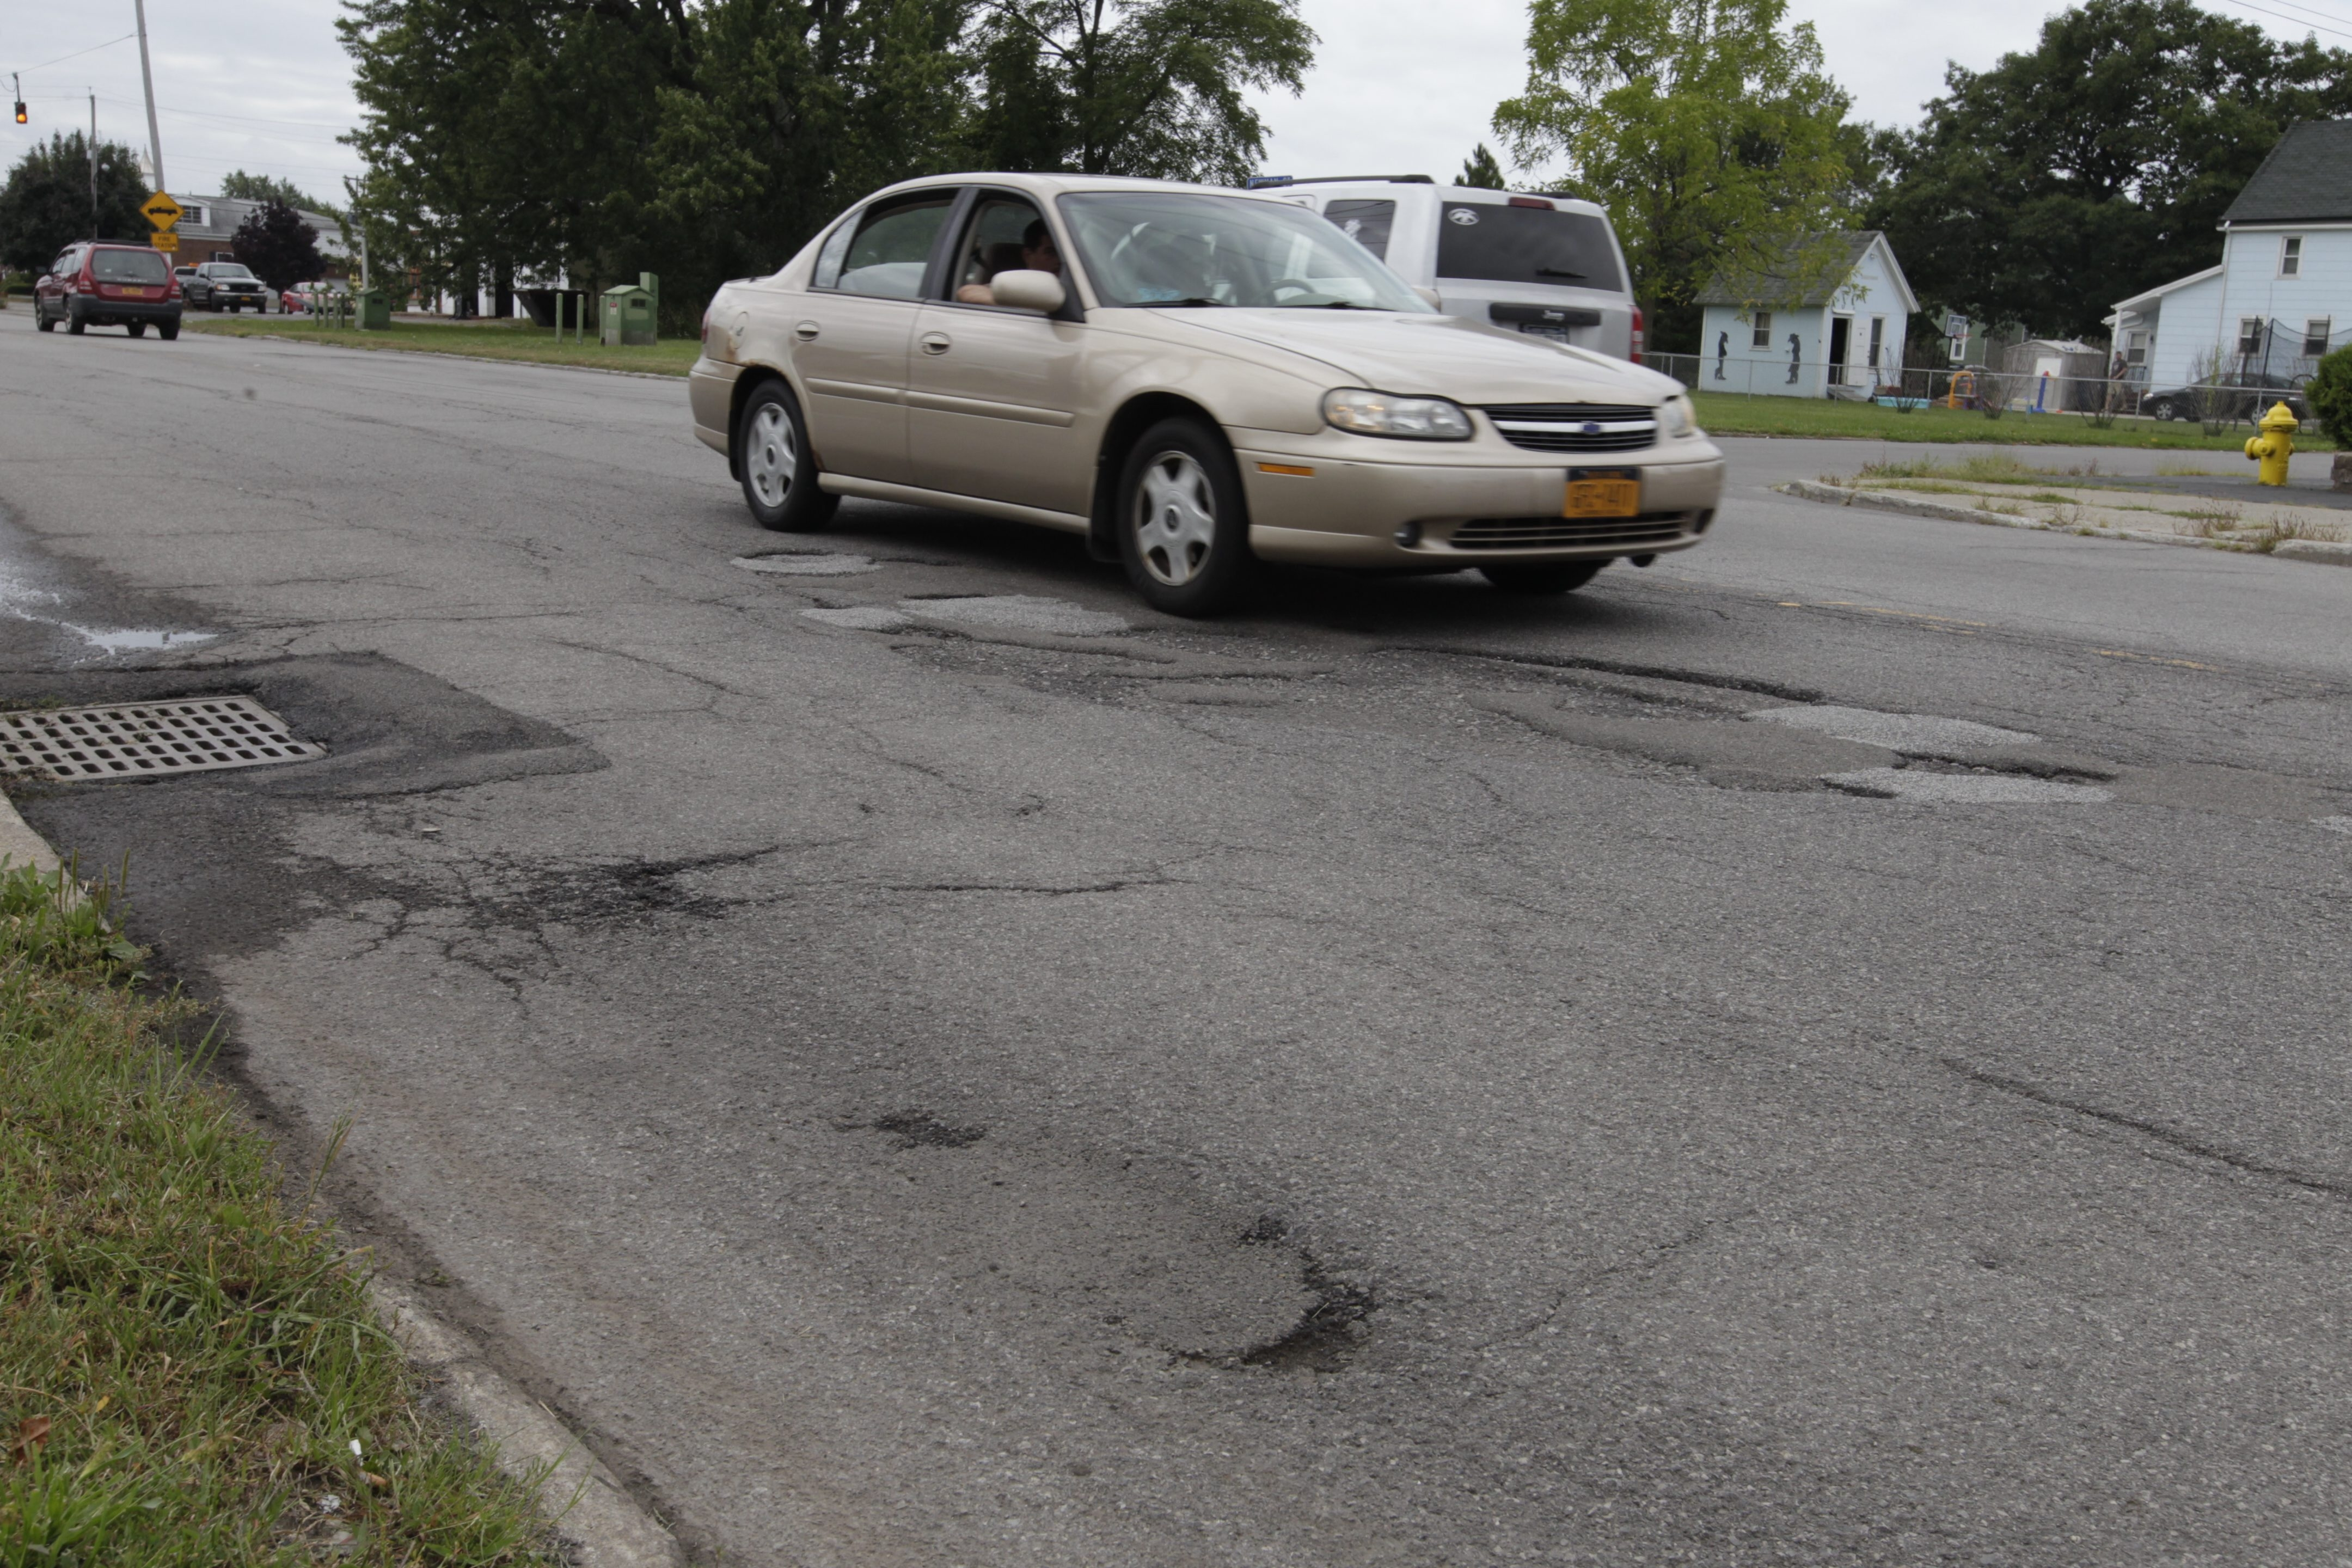 Potholes mar South Park Avenue in Lackawanna. Work is set to start on the road, which is near two of Erie County's most popular assets, Our Lady of Victory Basilica and the botanical gardens.